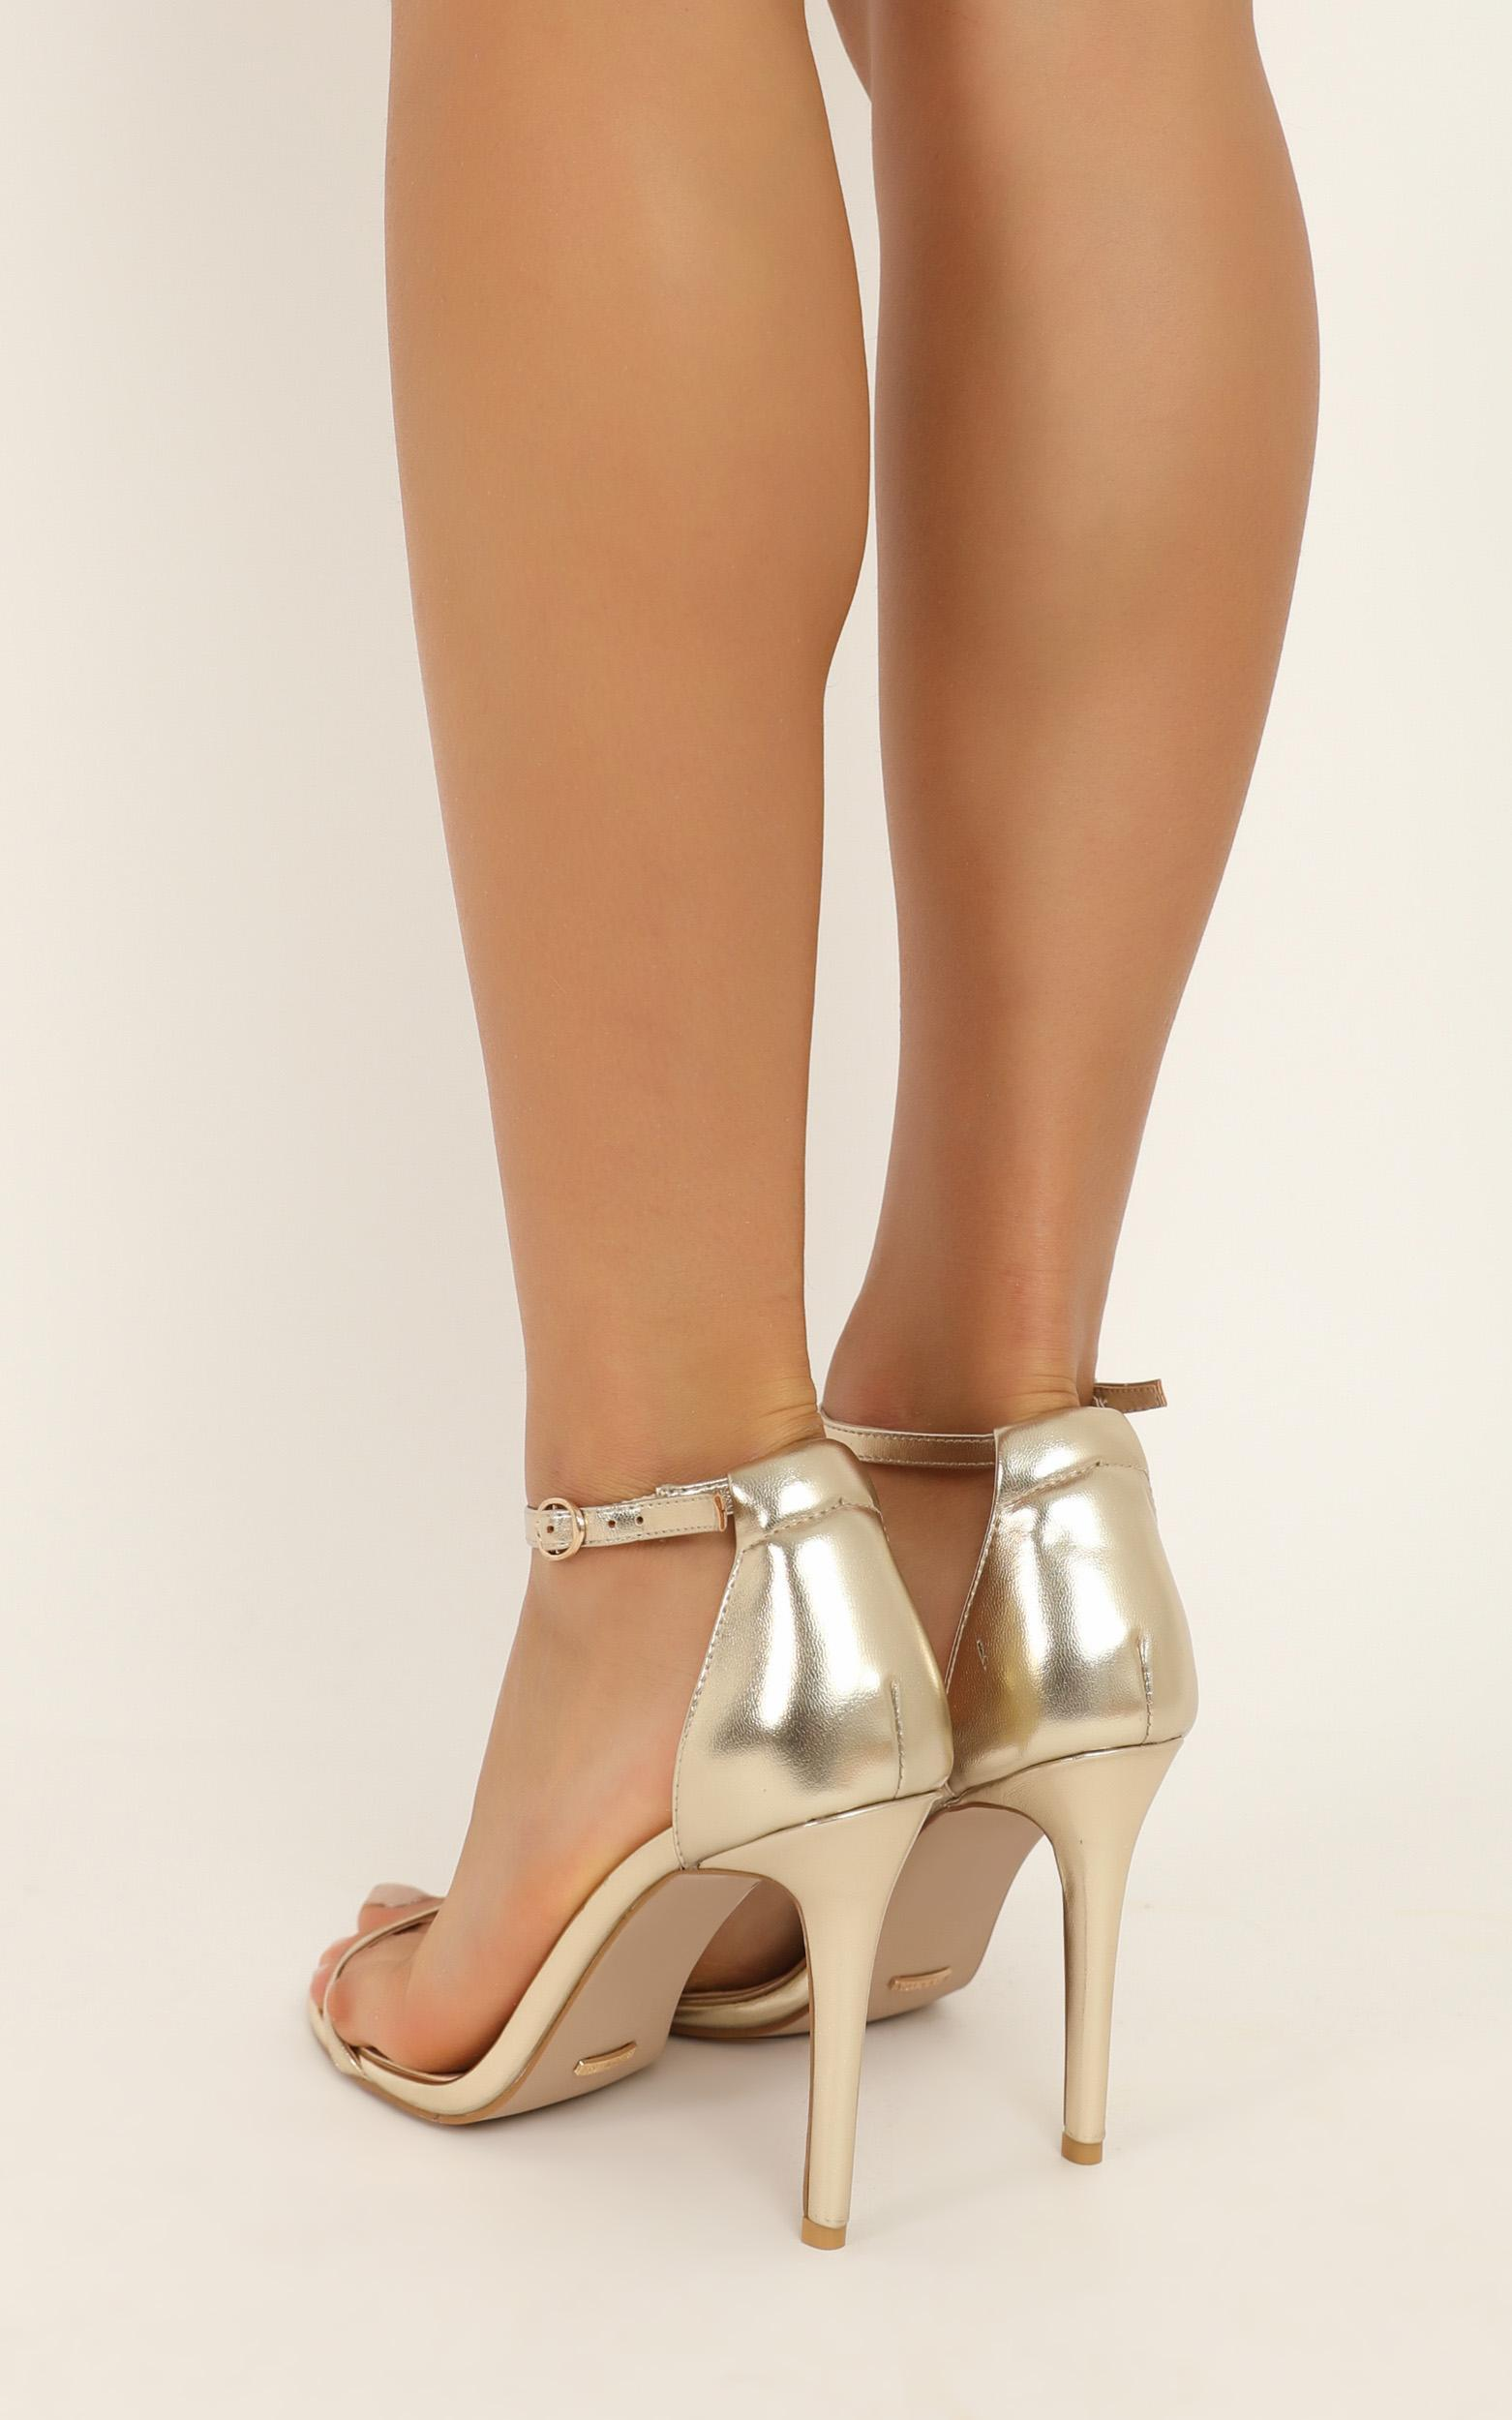 Billini - Timeless Heels in light gold metallic - 10, Gold, hi-res image number null